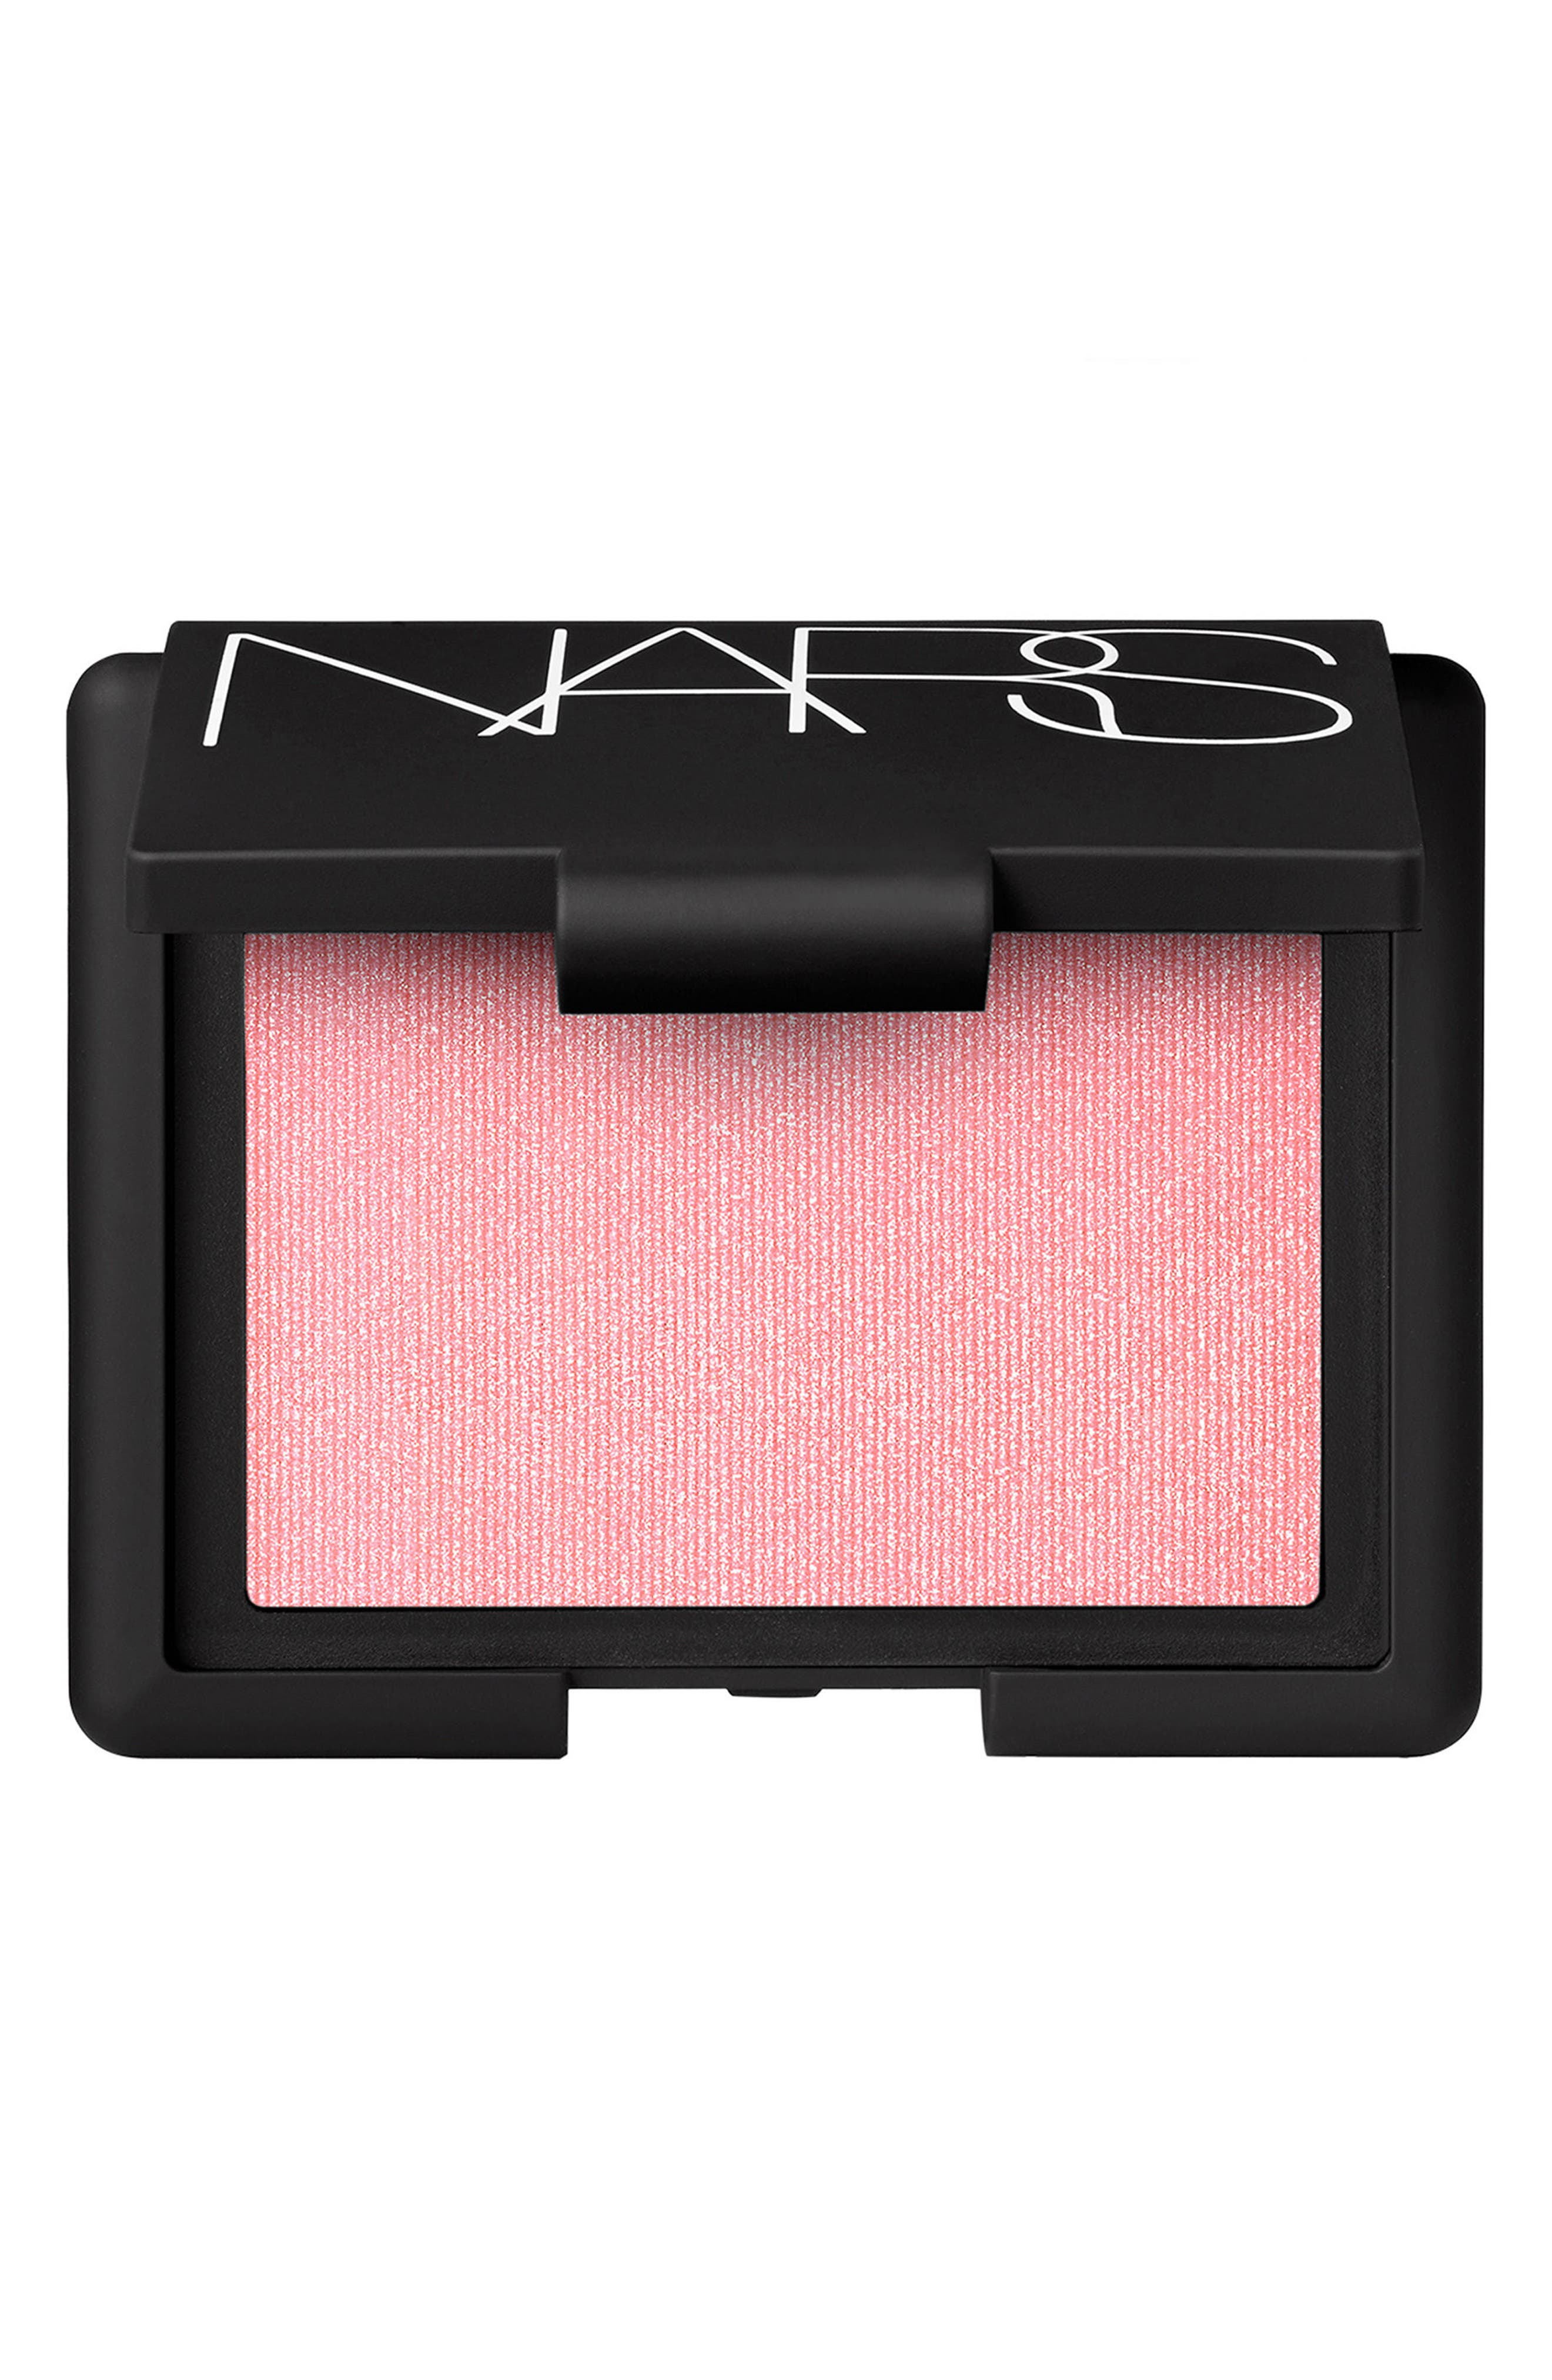 NARS Spring 2018 Blush (Limited Edition)